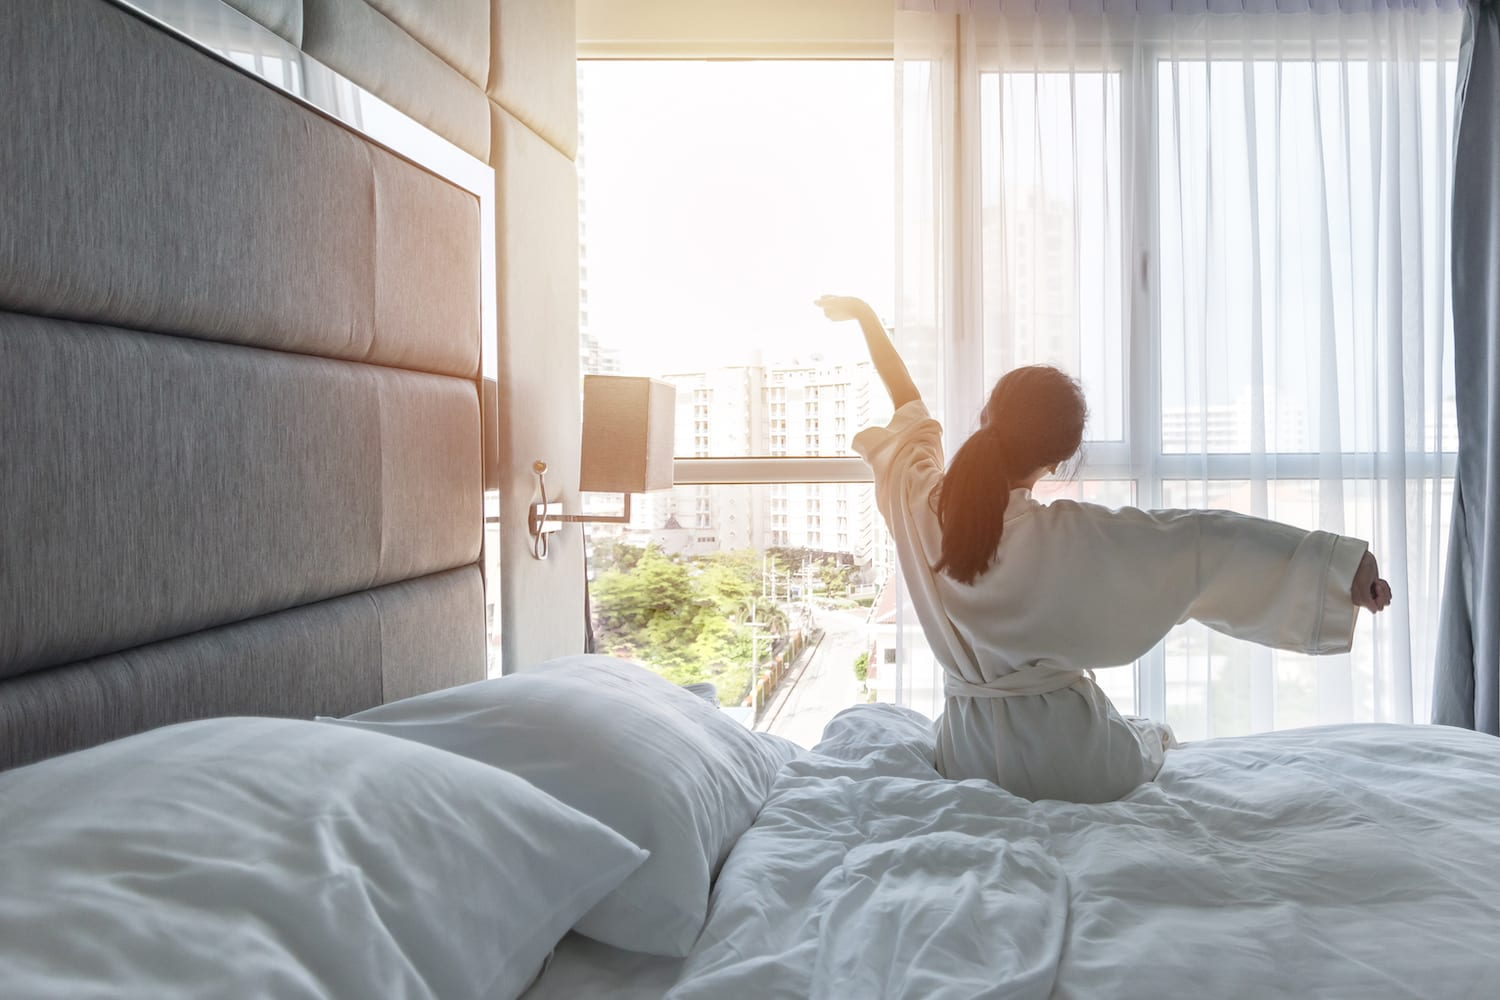 woman waking up in a hotel